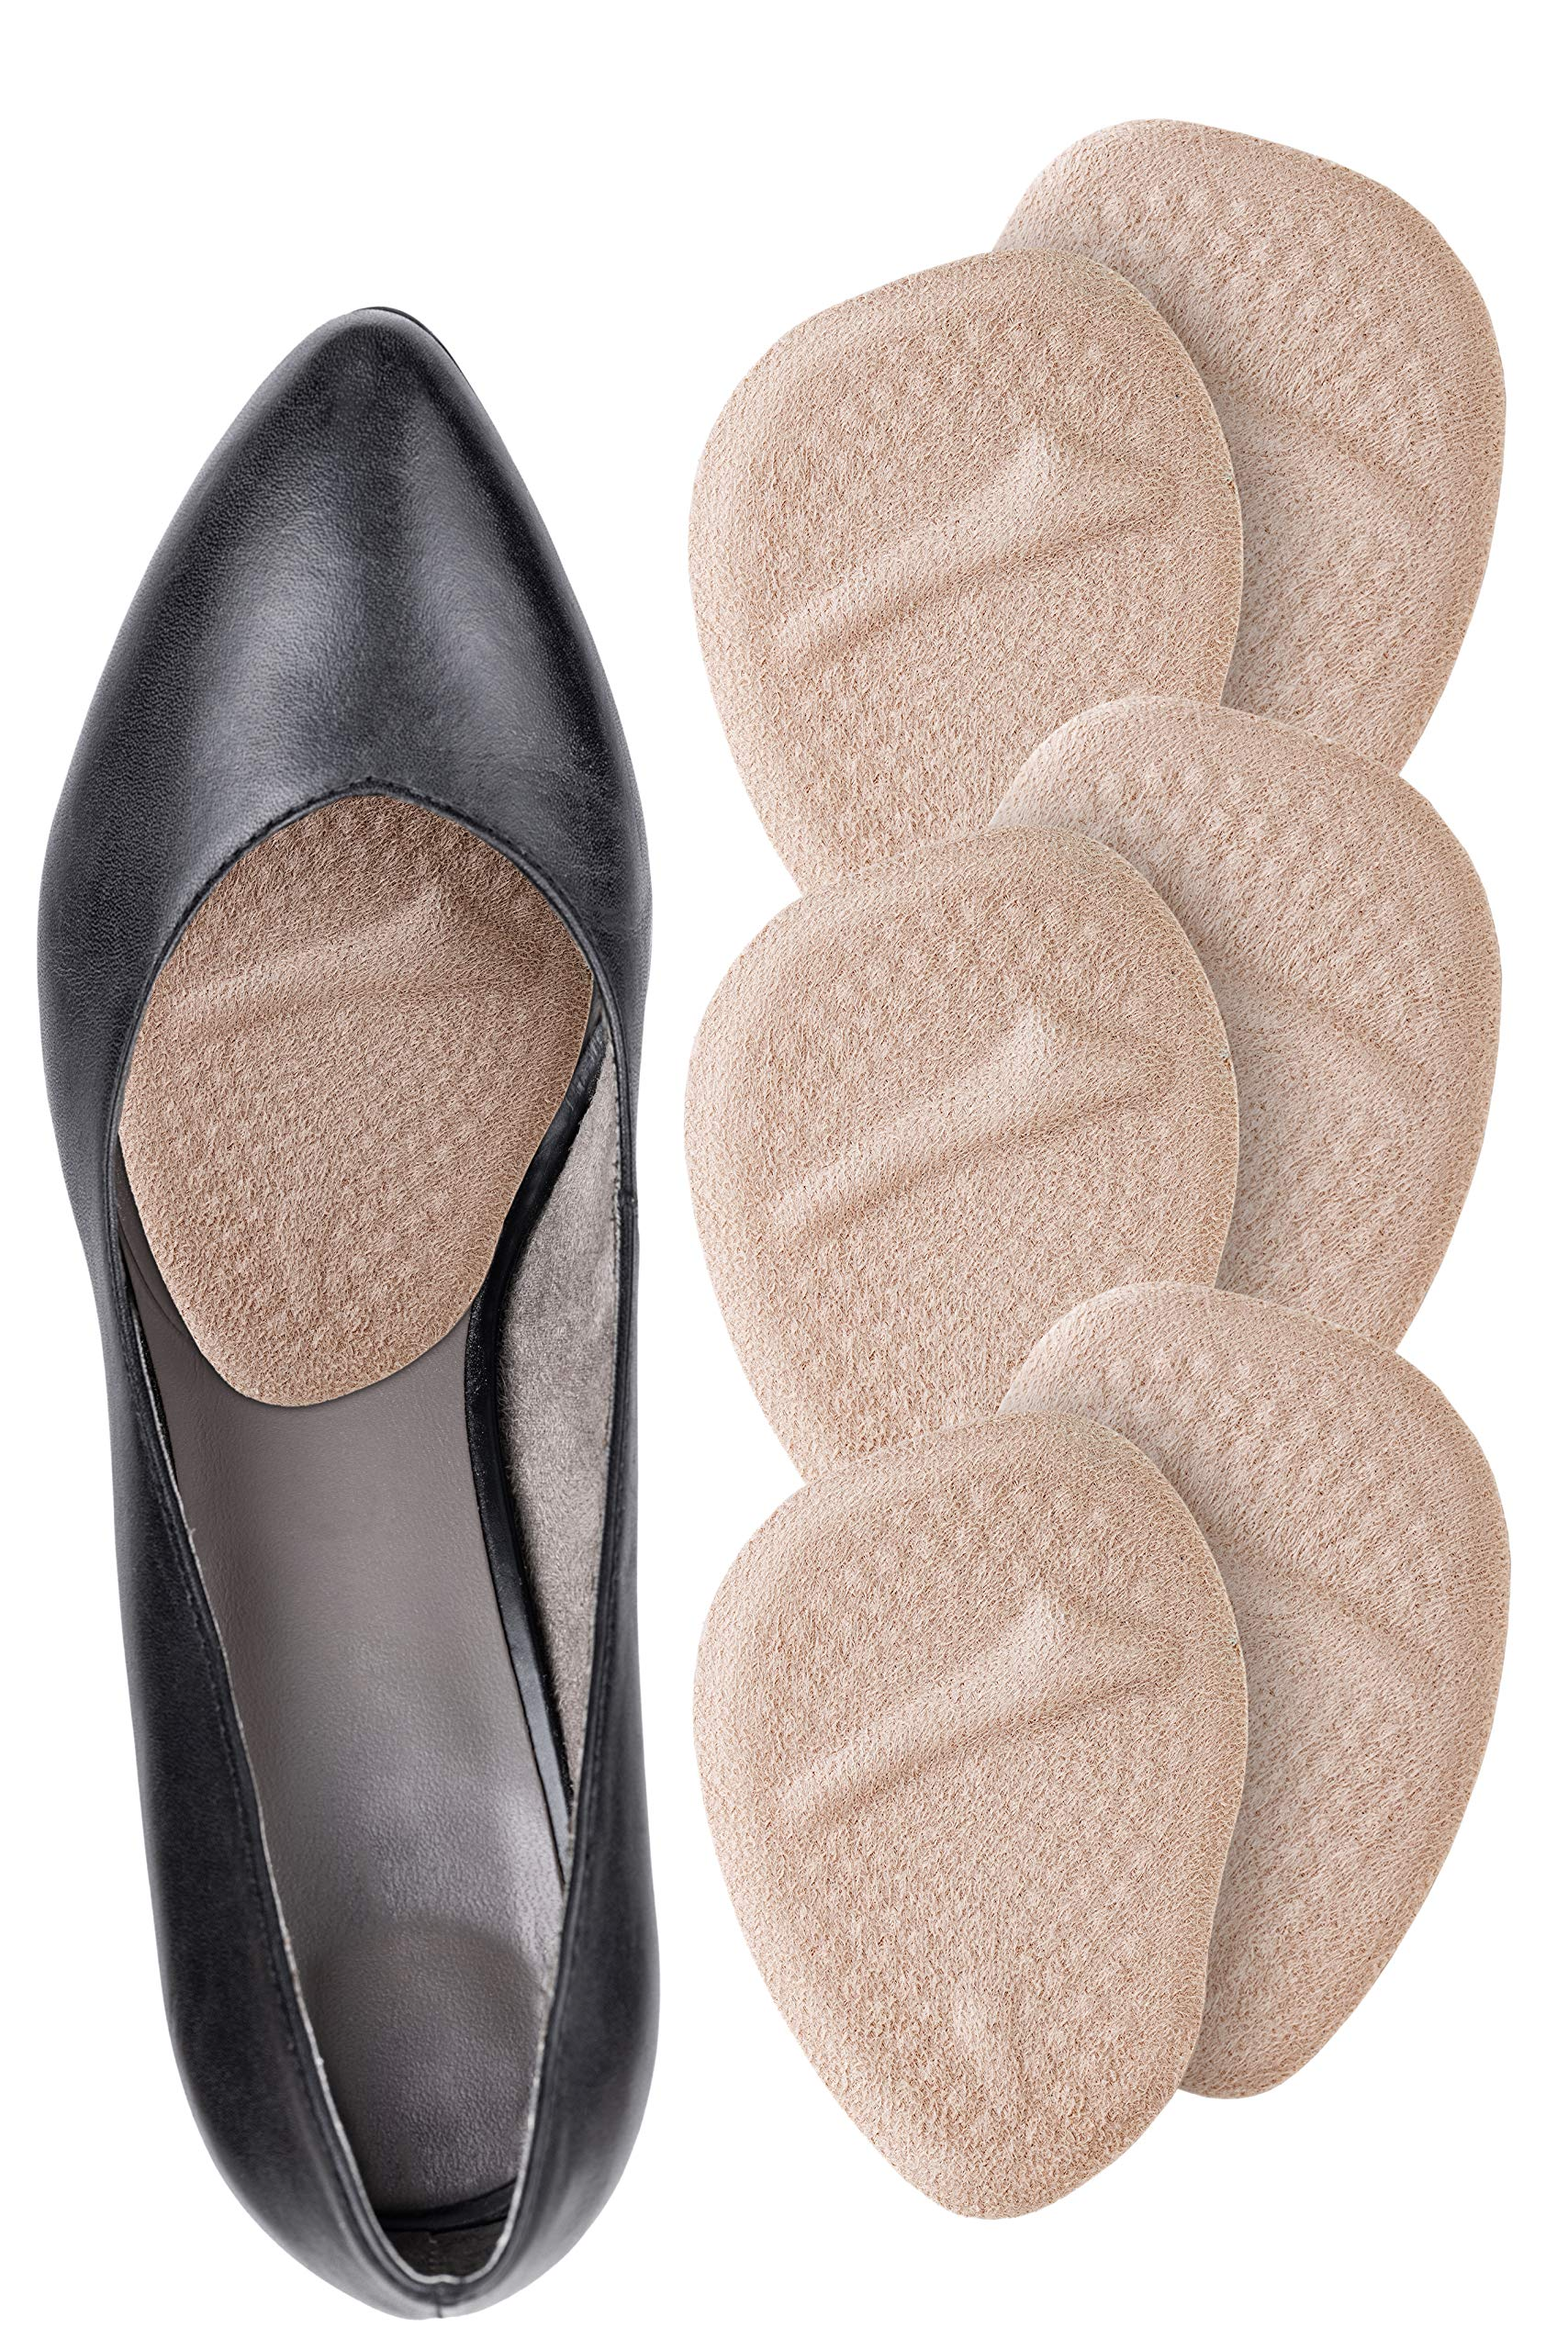 Ball of Foot Cushions for Women High Heels - 3 Pairs (6 Pieces) - Soft Gel Insole Metatarsal Pads Shoe Inserts - Mortons Neuroma Callus Metatarsal Foot Pain Relief Bunion Forefoot Cushioning